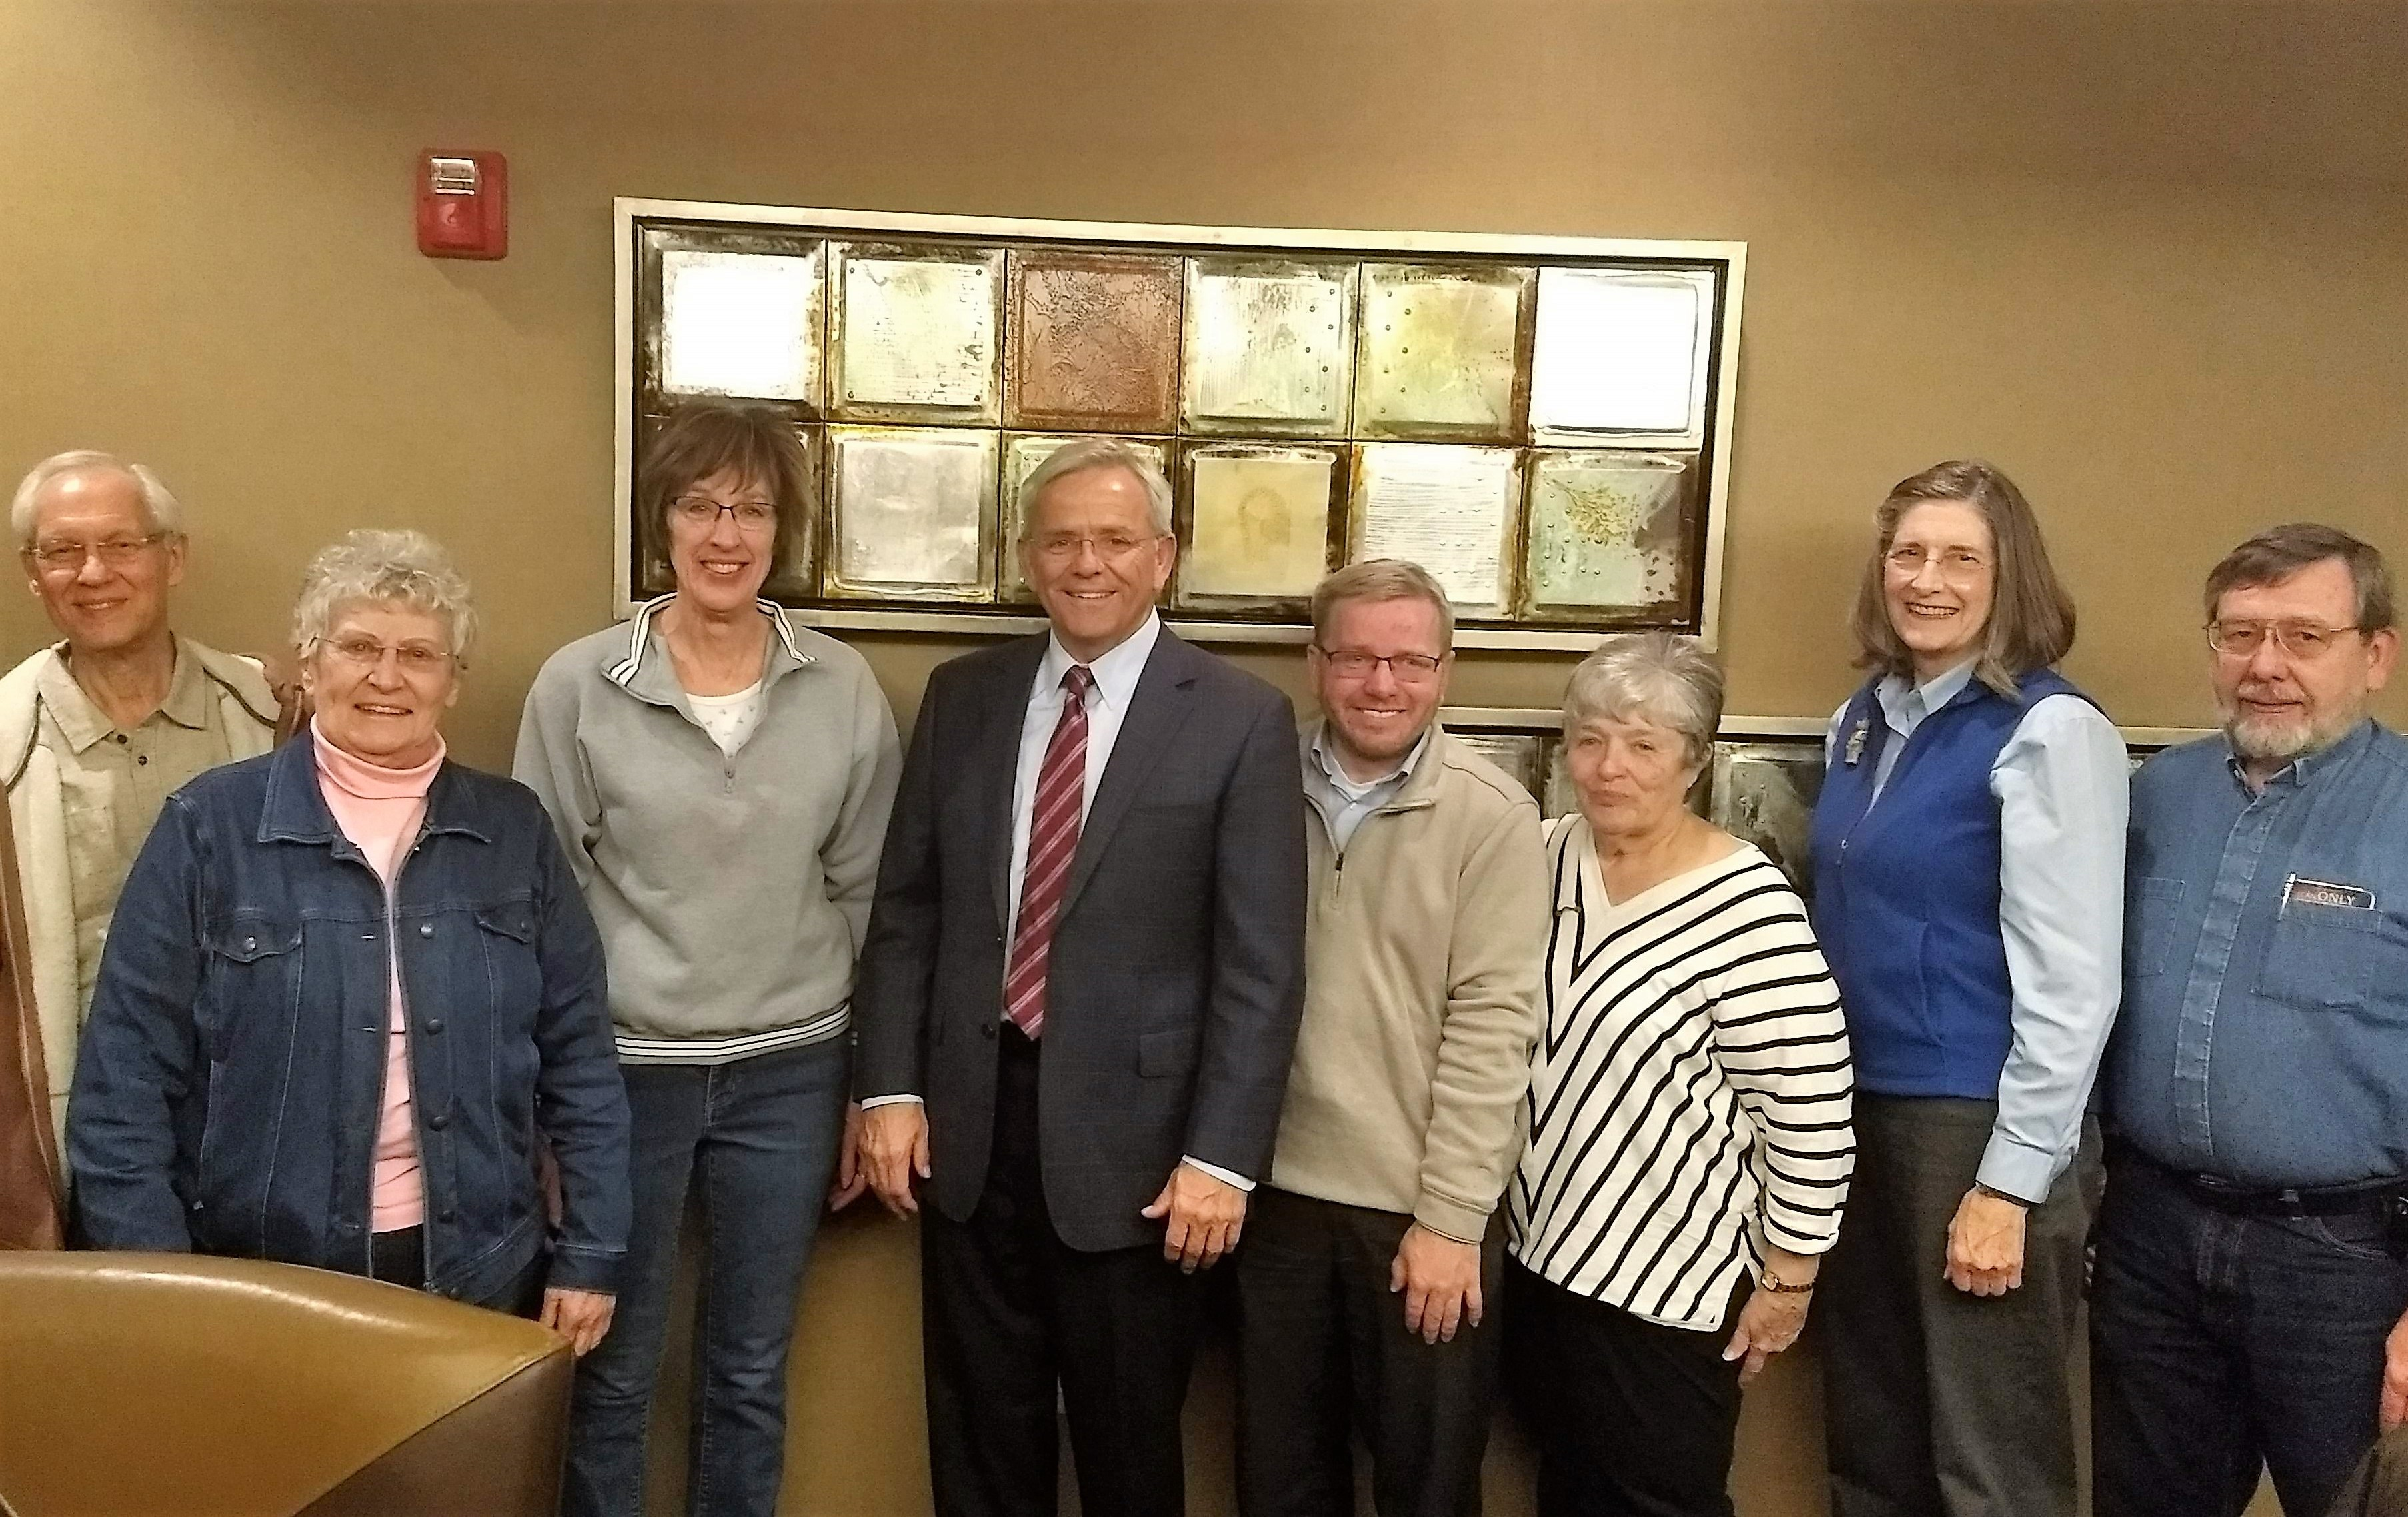 OTOC meets with 9 area senators in anticipation of 2019 Unicameral session - 14